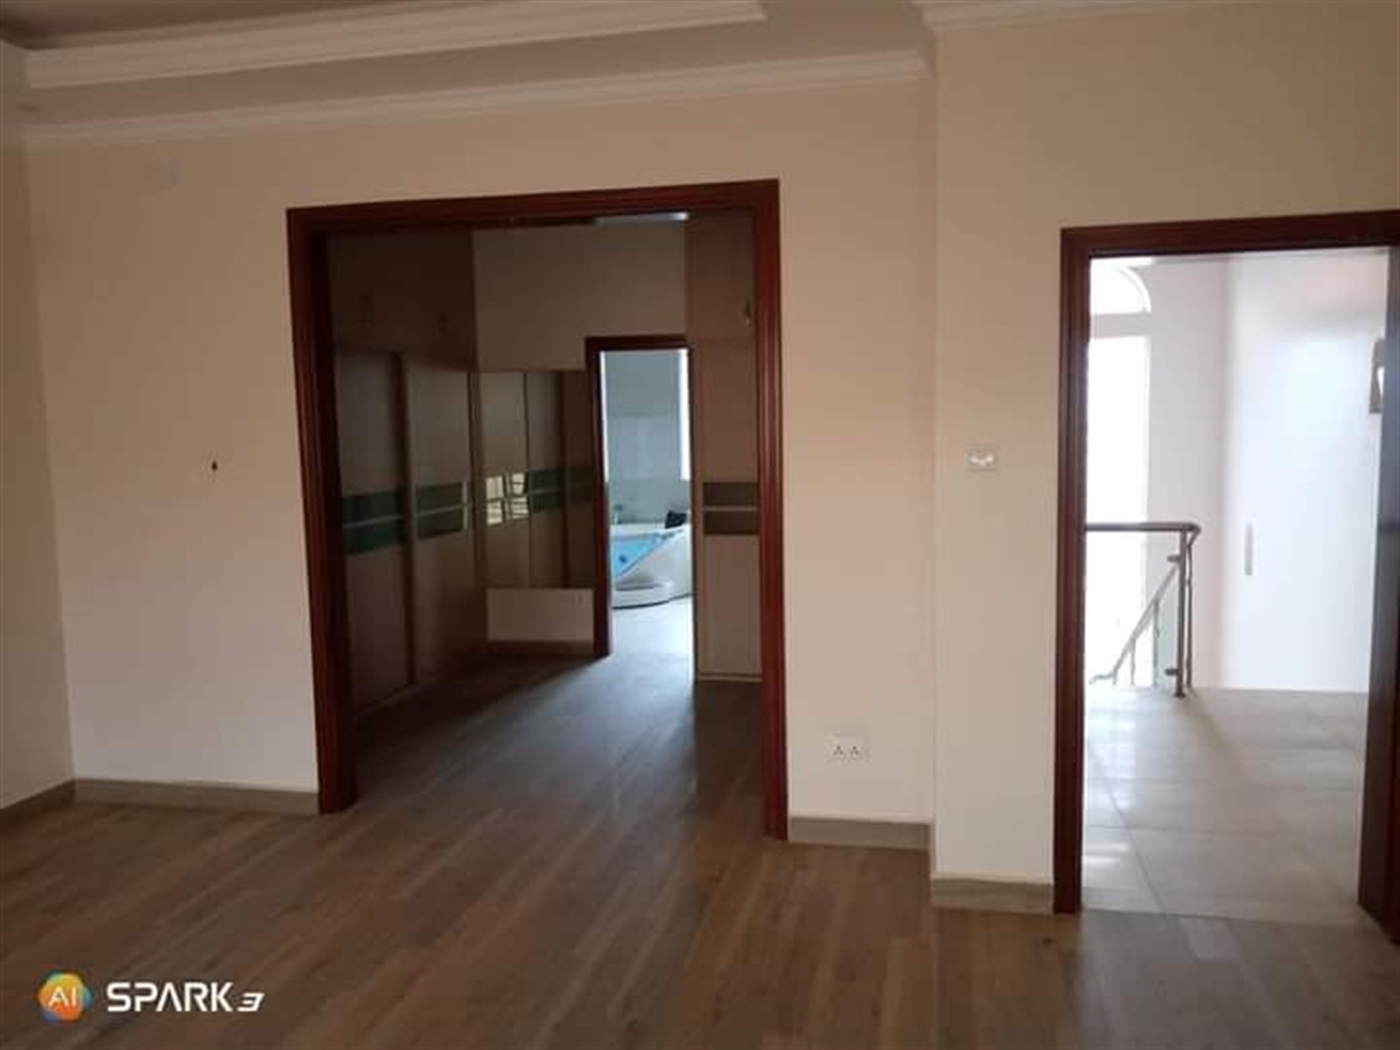 Town House for sale in Nsambya Kampala